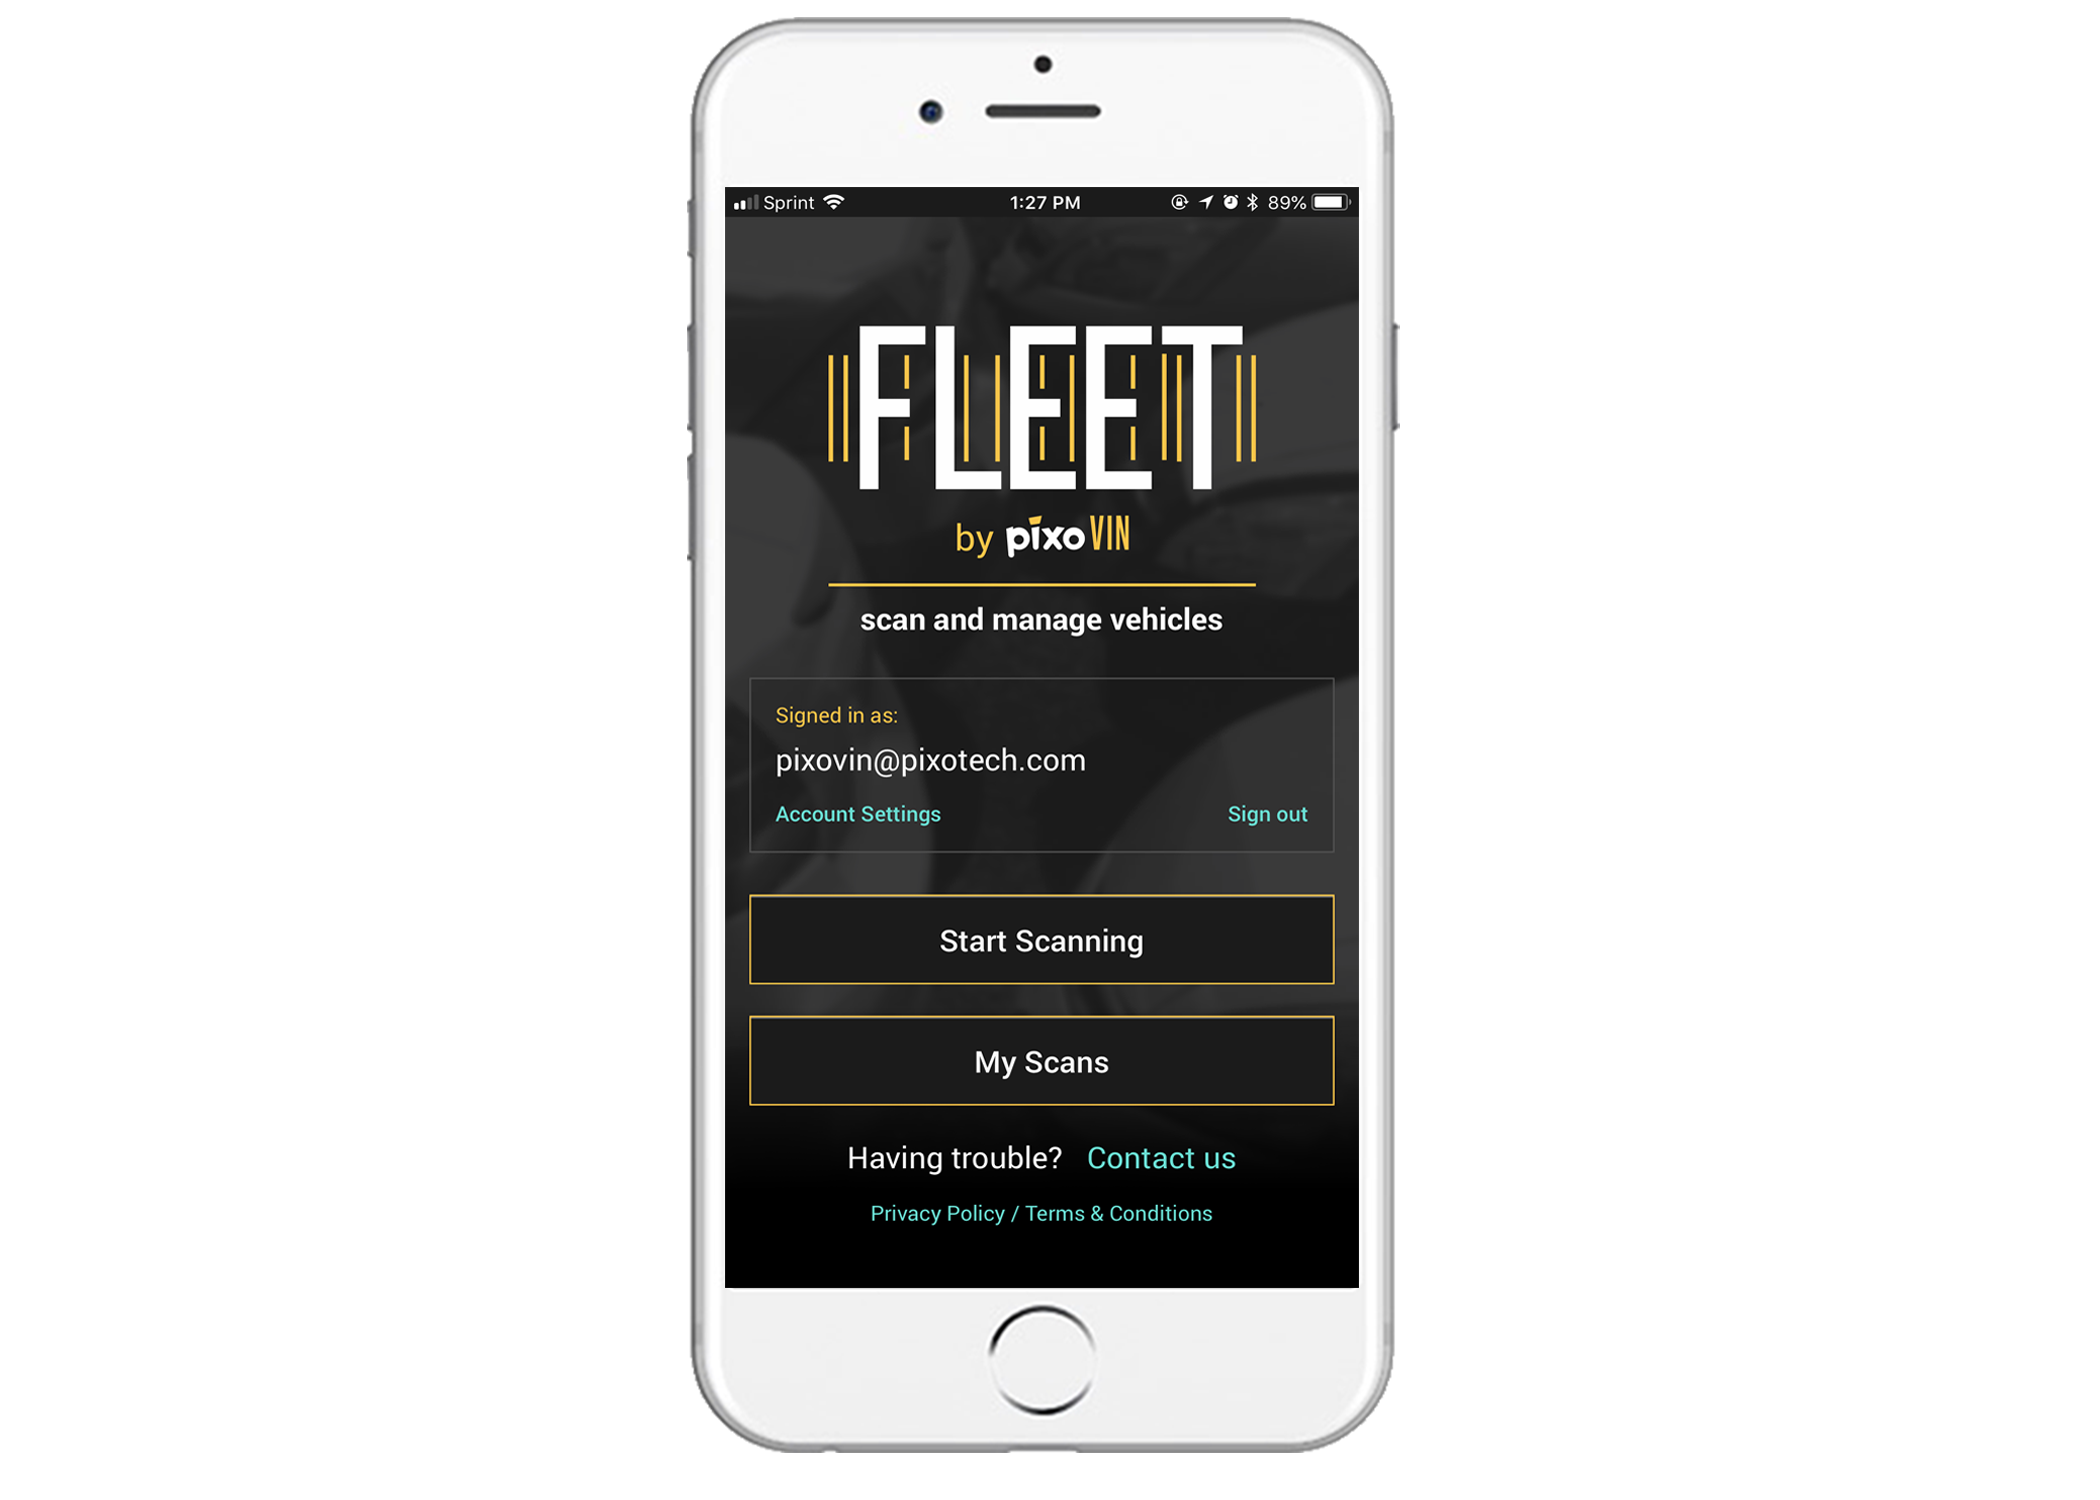 Vin Number Scanner >> Fleet Pixovin